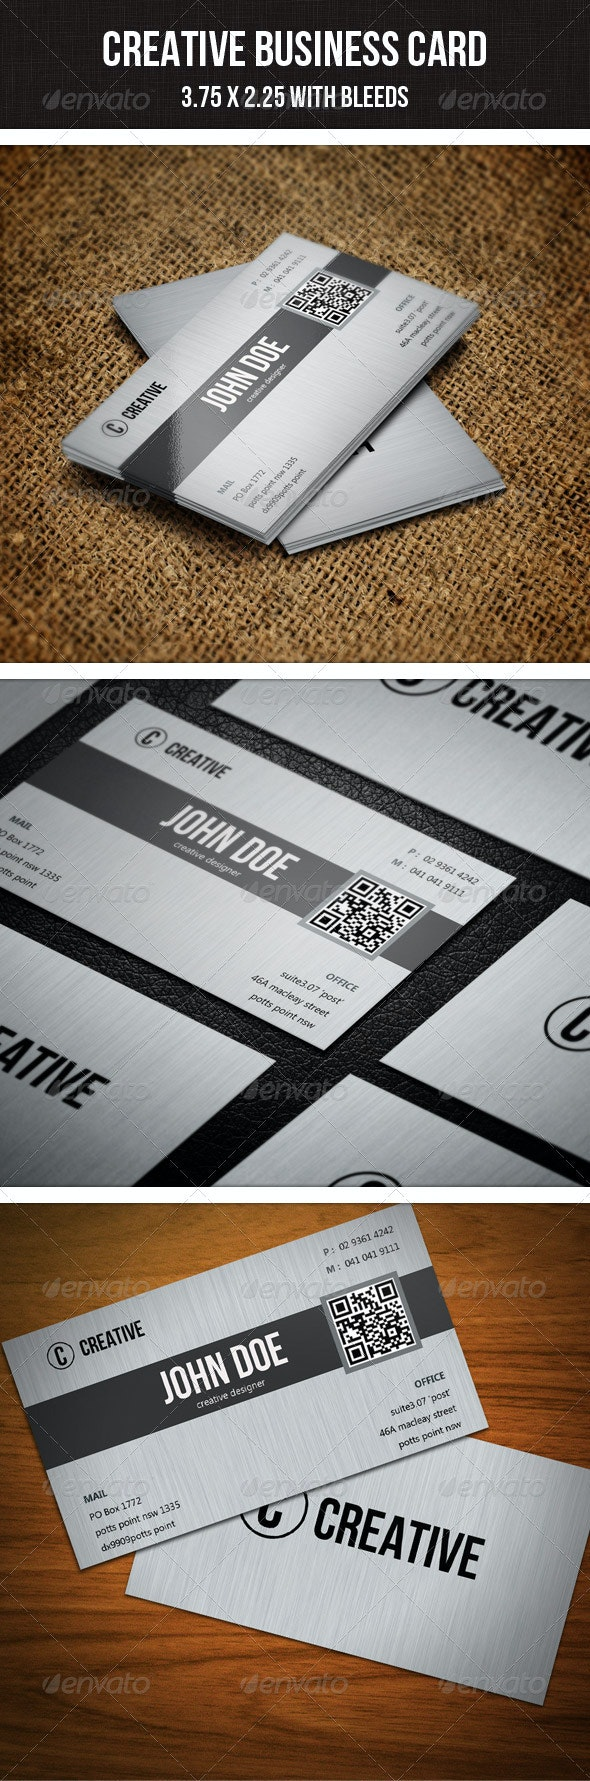 Creative Business Card - 22 - Corporate Business Cards